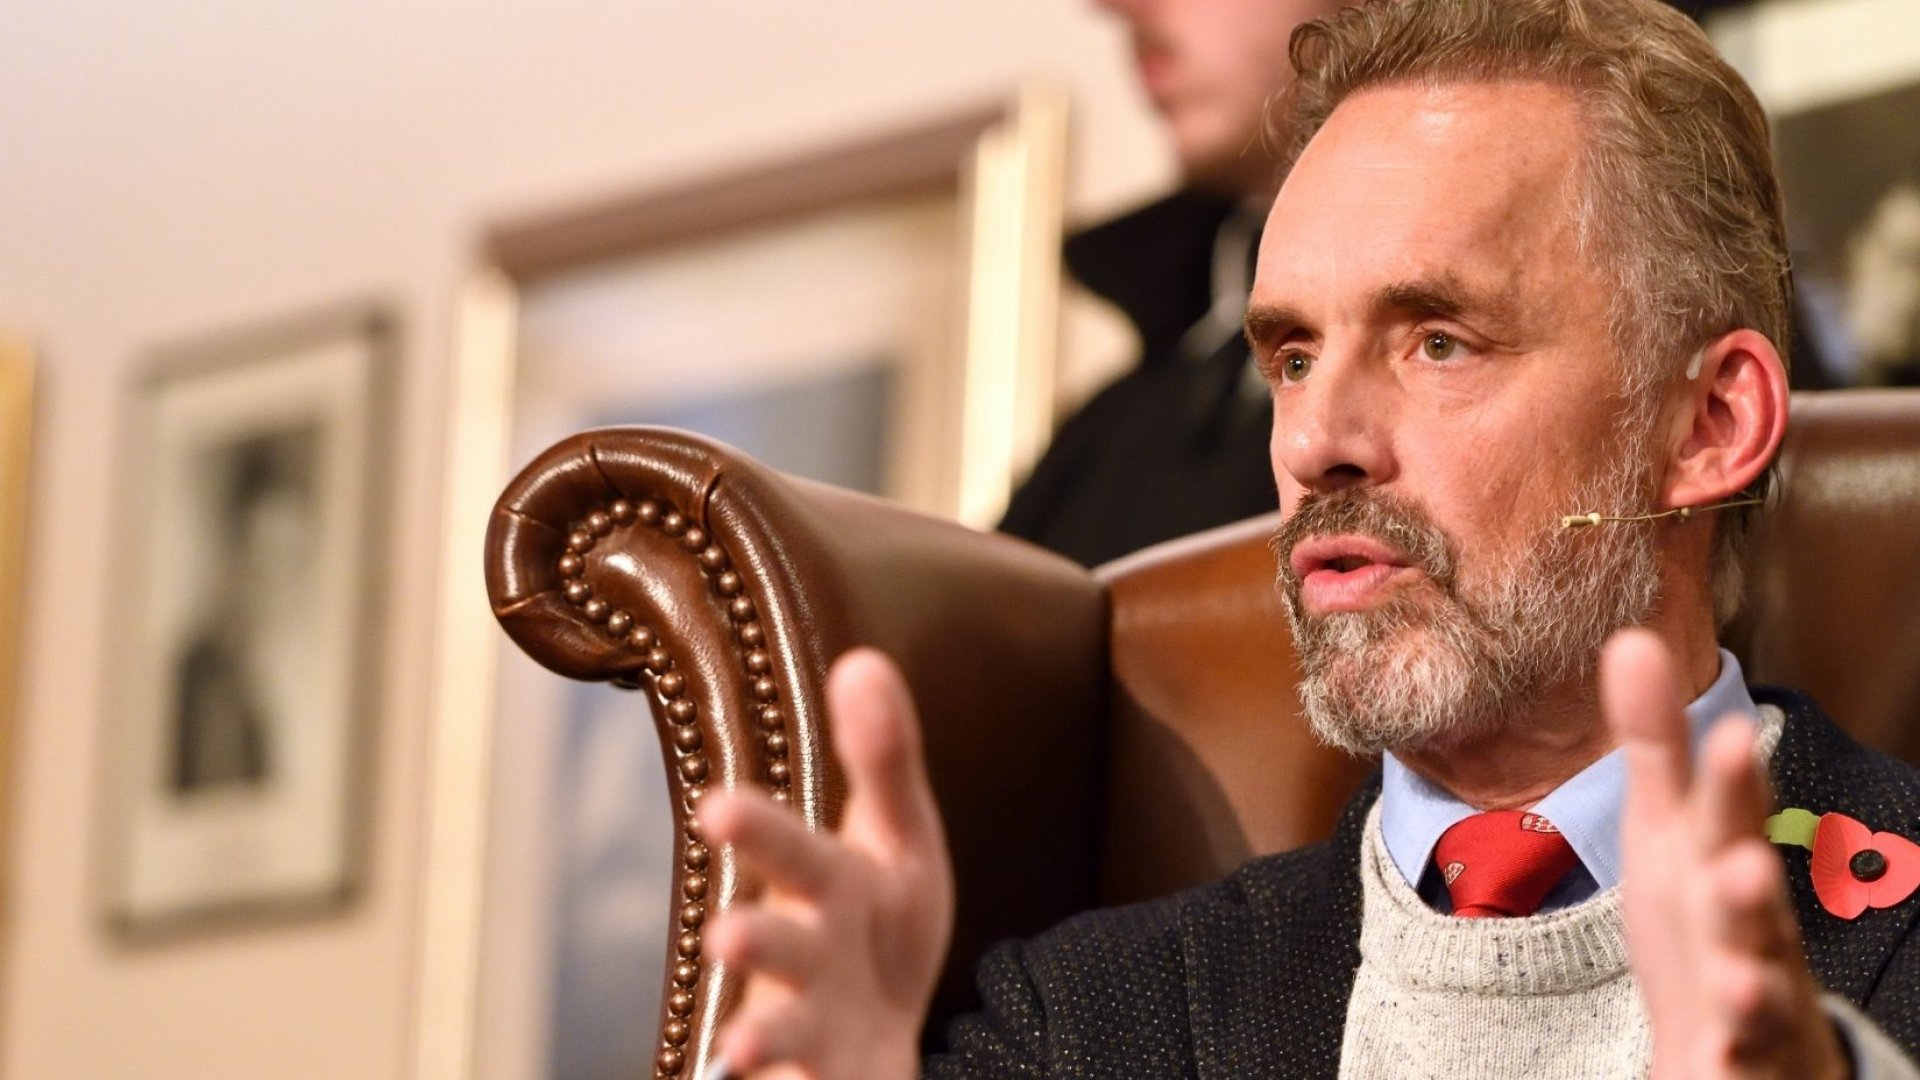 Jordan Peterson Is in Rehab. Why HR and Managers Should Take Note